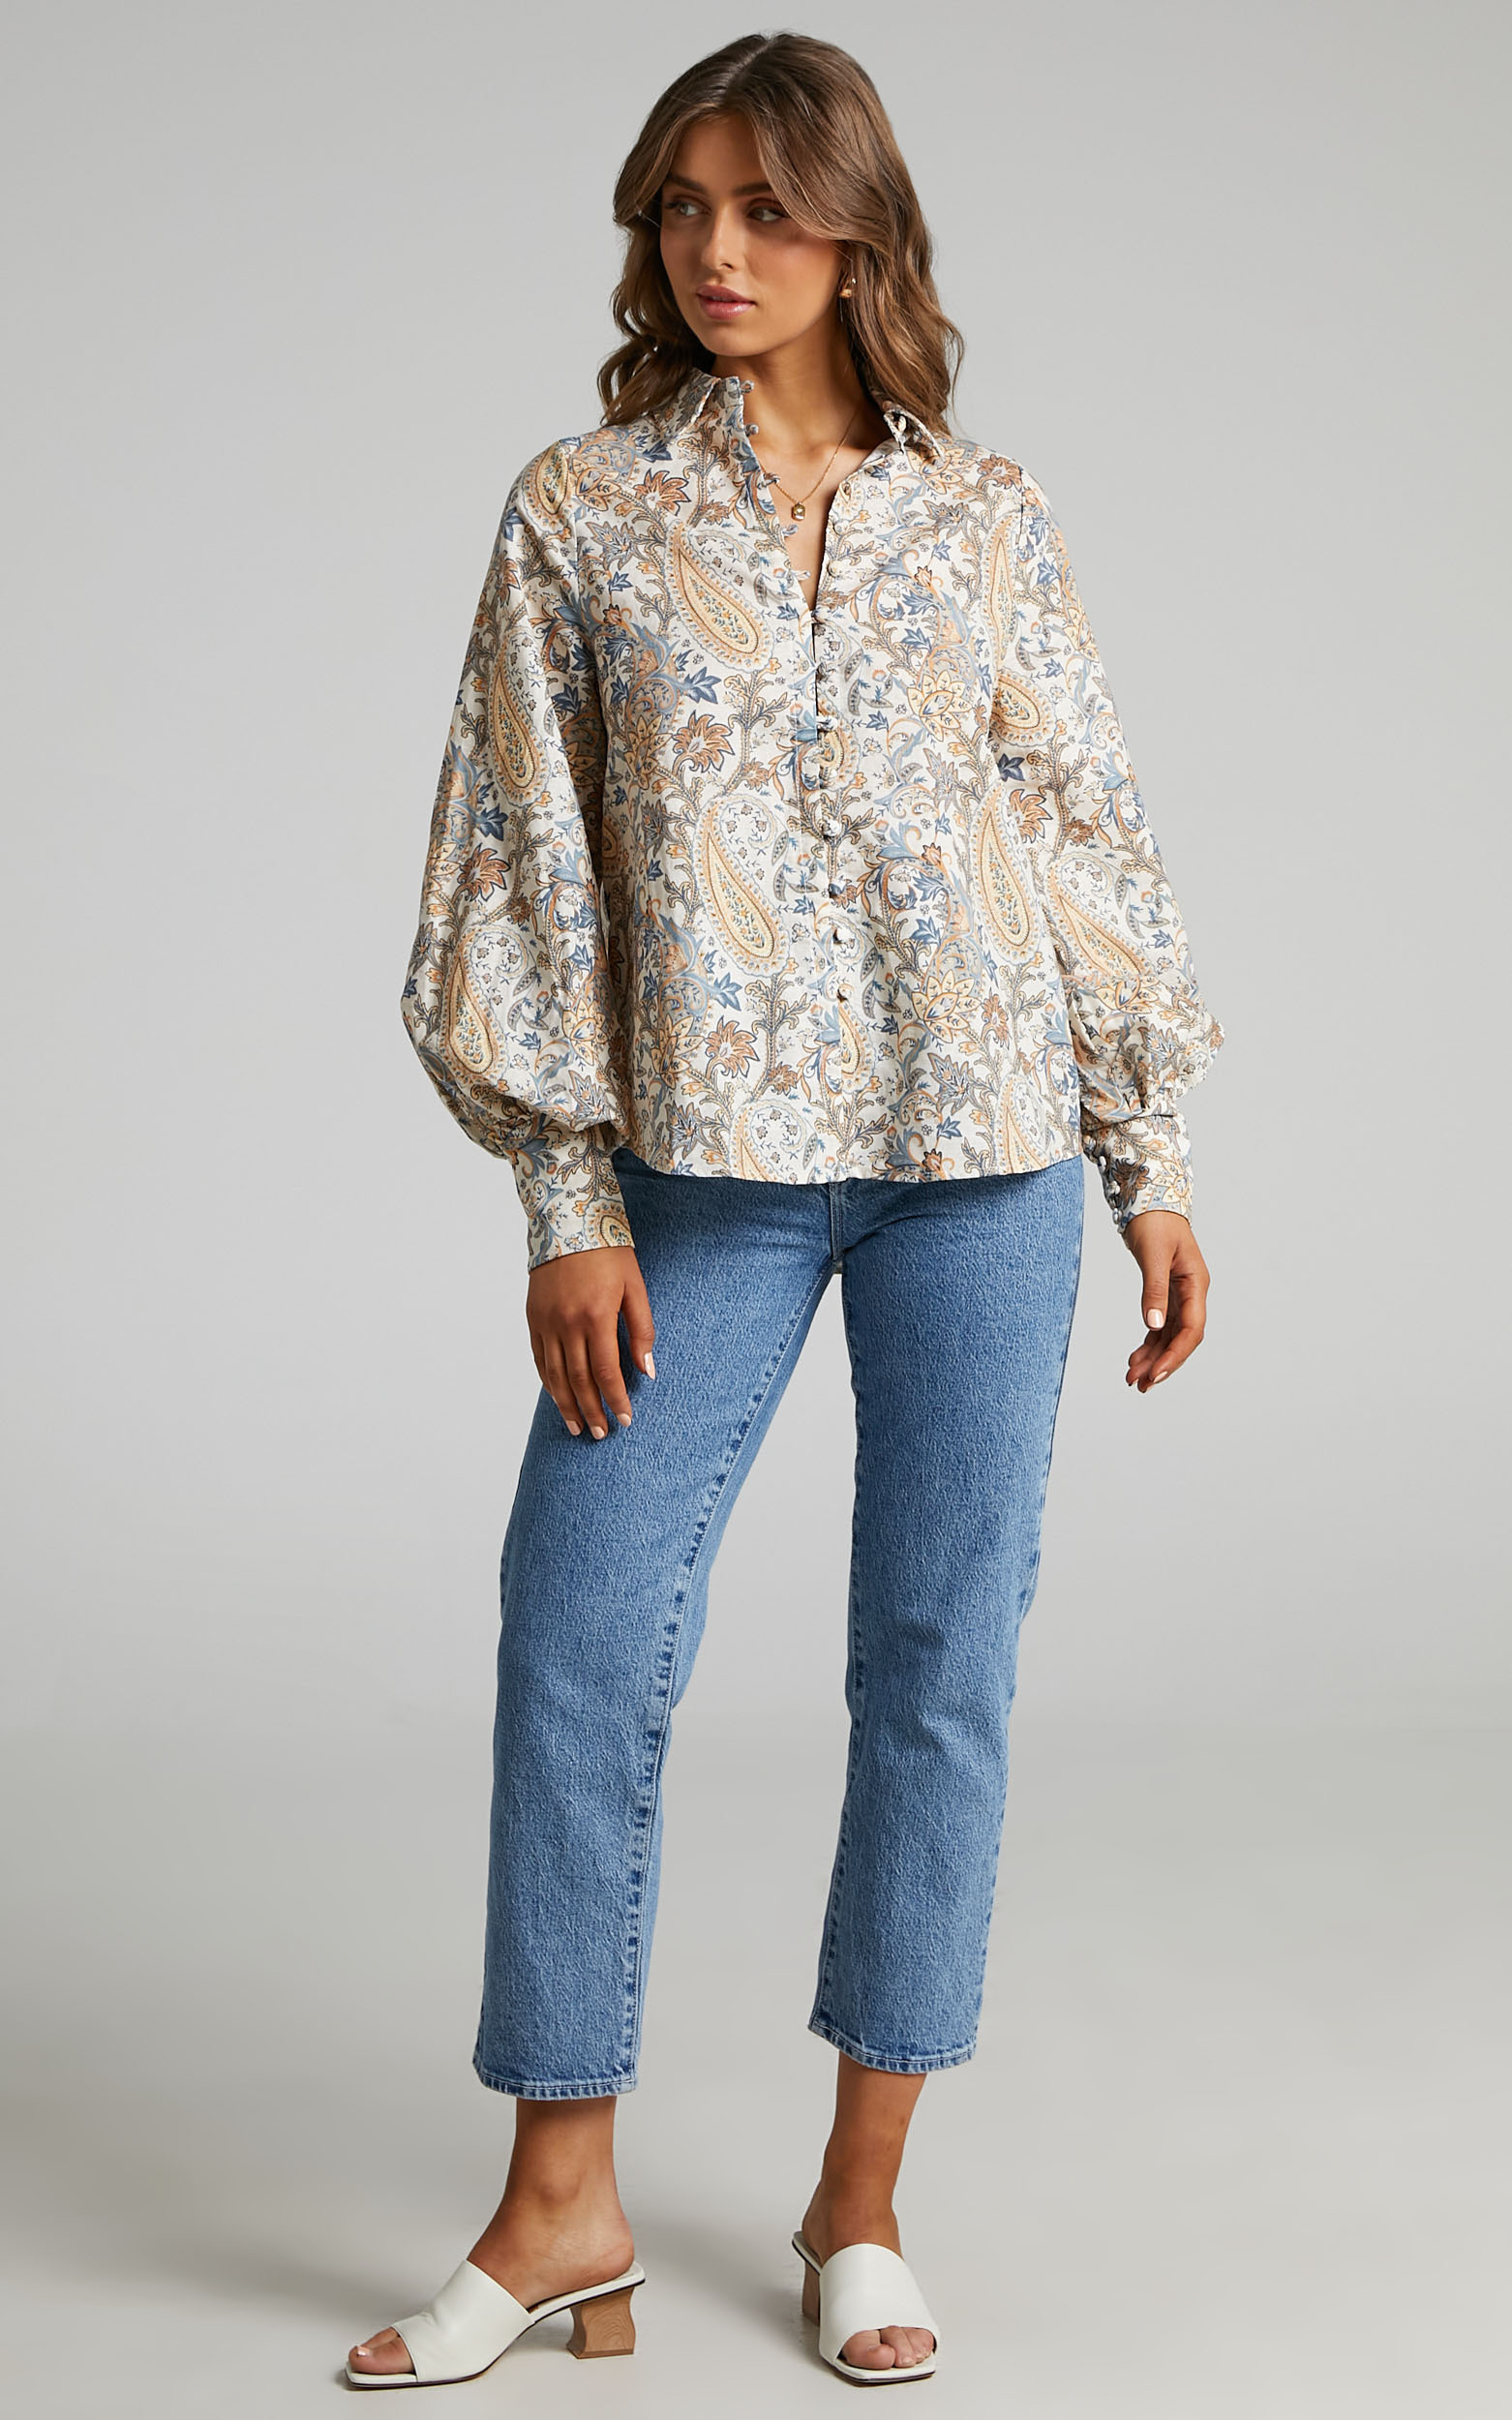 Charlie Holiday - Harmony Shirt in Paisley - L, MLT1, hi-res image number null